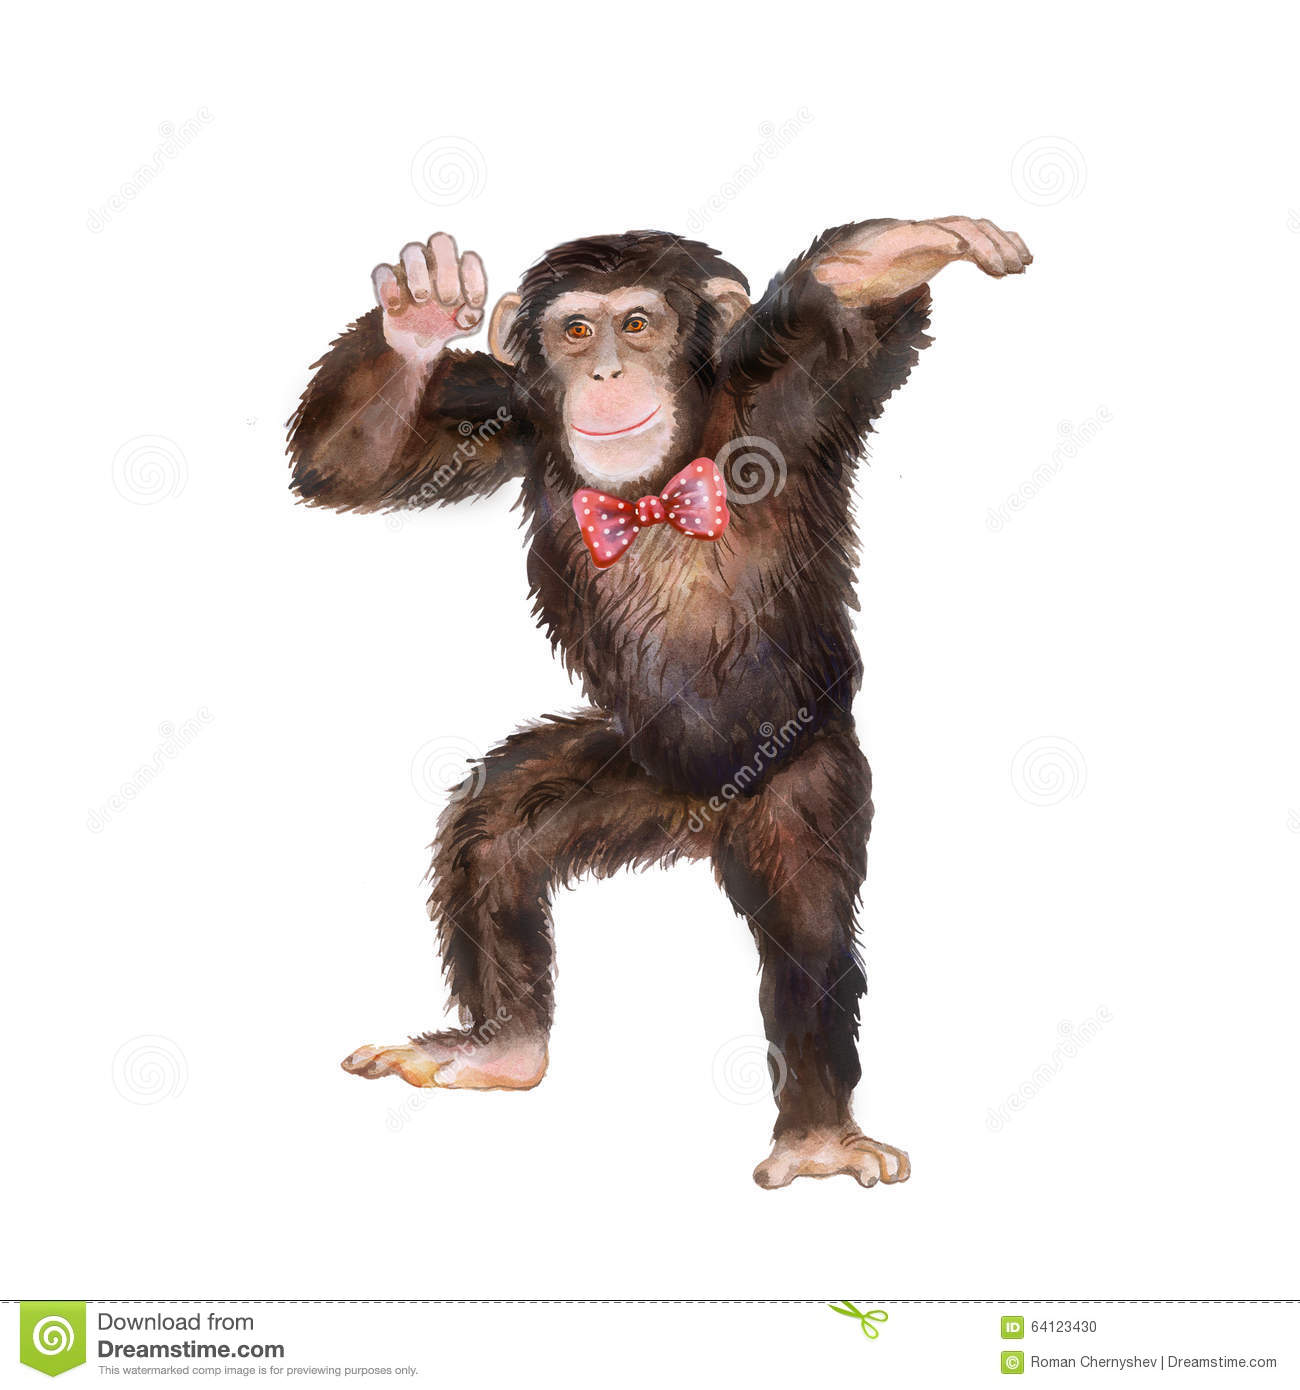 Monkey Giving Thumbs Up Illustrations, Royalty-Free Vector ... |Monkey King Crown